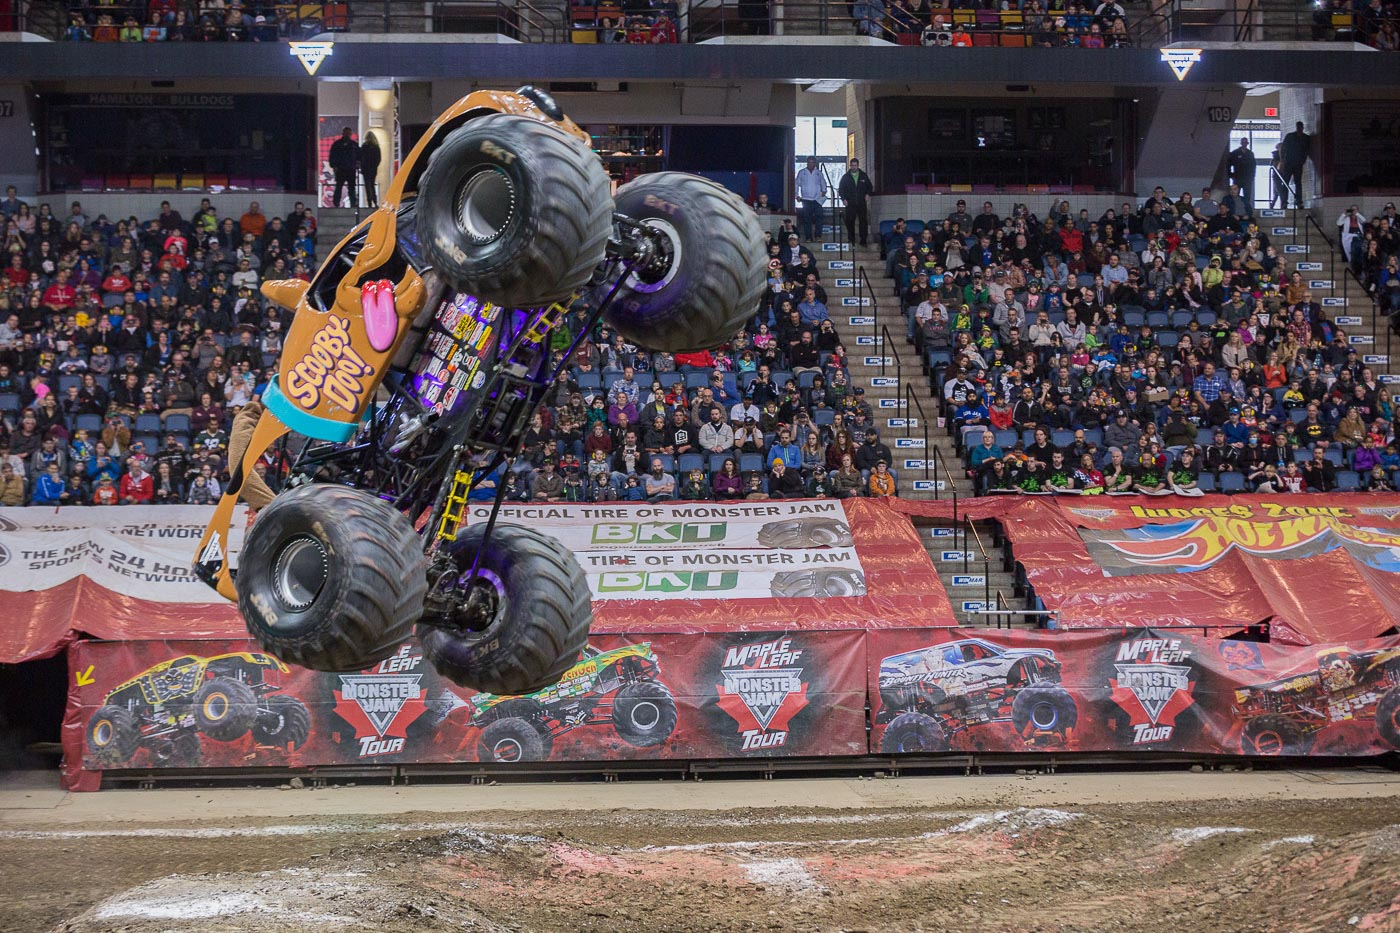 http://www.monsterjam.com/sites/default/files/Hamilton_041616_Turcyznski%20%281%29.jpg